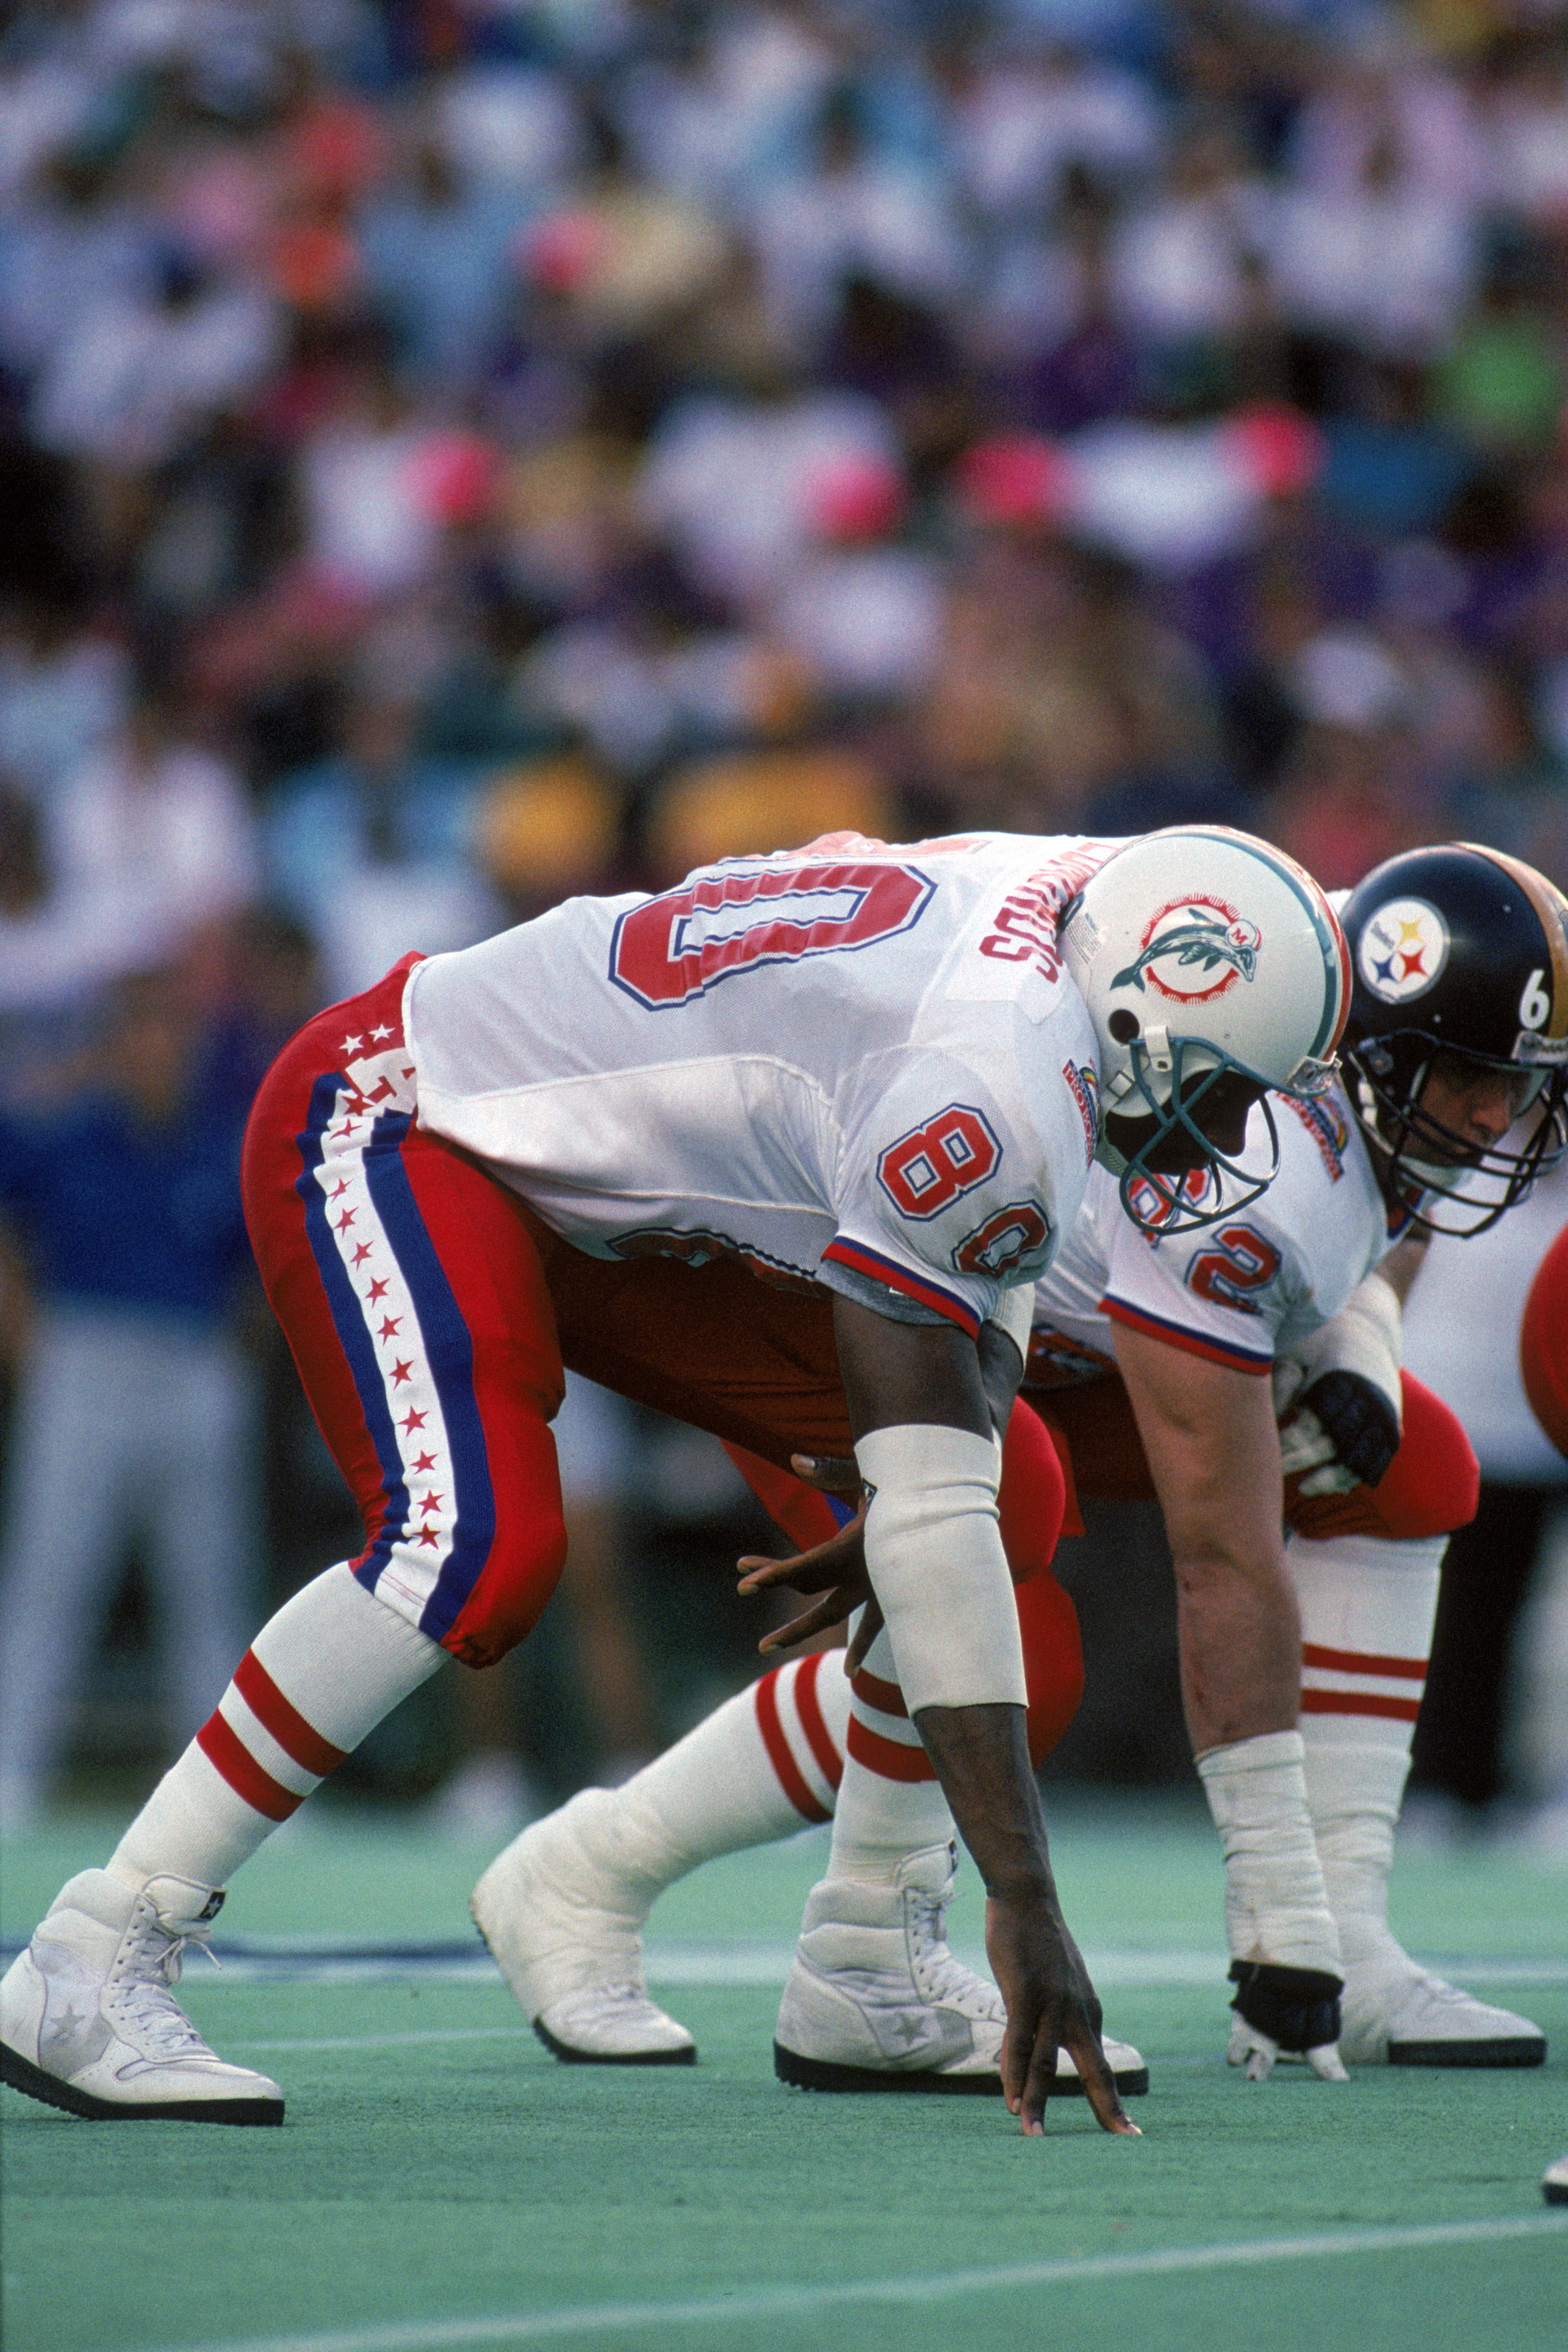 HONOLULU, HI - FEBRUARY 4:  Miami Dolphins tight end Ferrell Edmunds #80 of the AFC squad lines up at the line of scrimmage during the 1990 NFL Pro Bowl at Aloha Stadium on February 4, 1990 in Honolulu, Hawaii.  The NFC won 27-21.  (Photo by George Rose/G